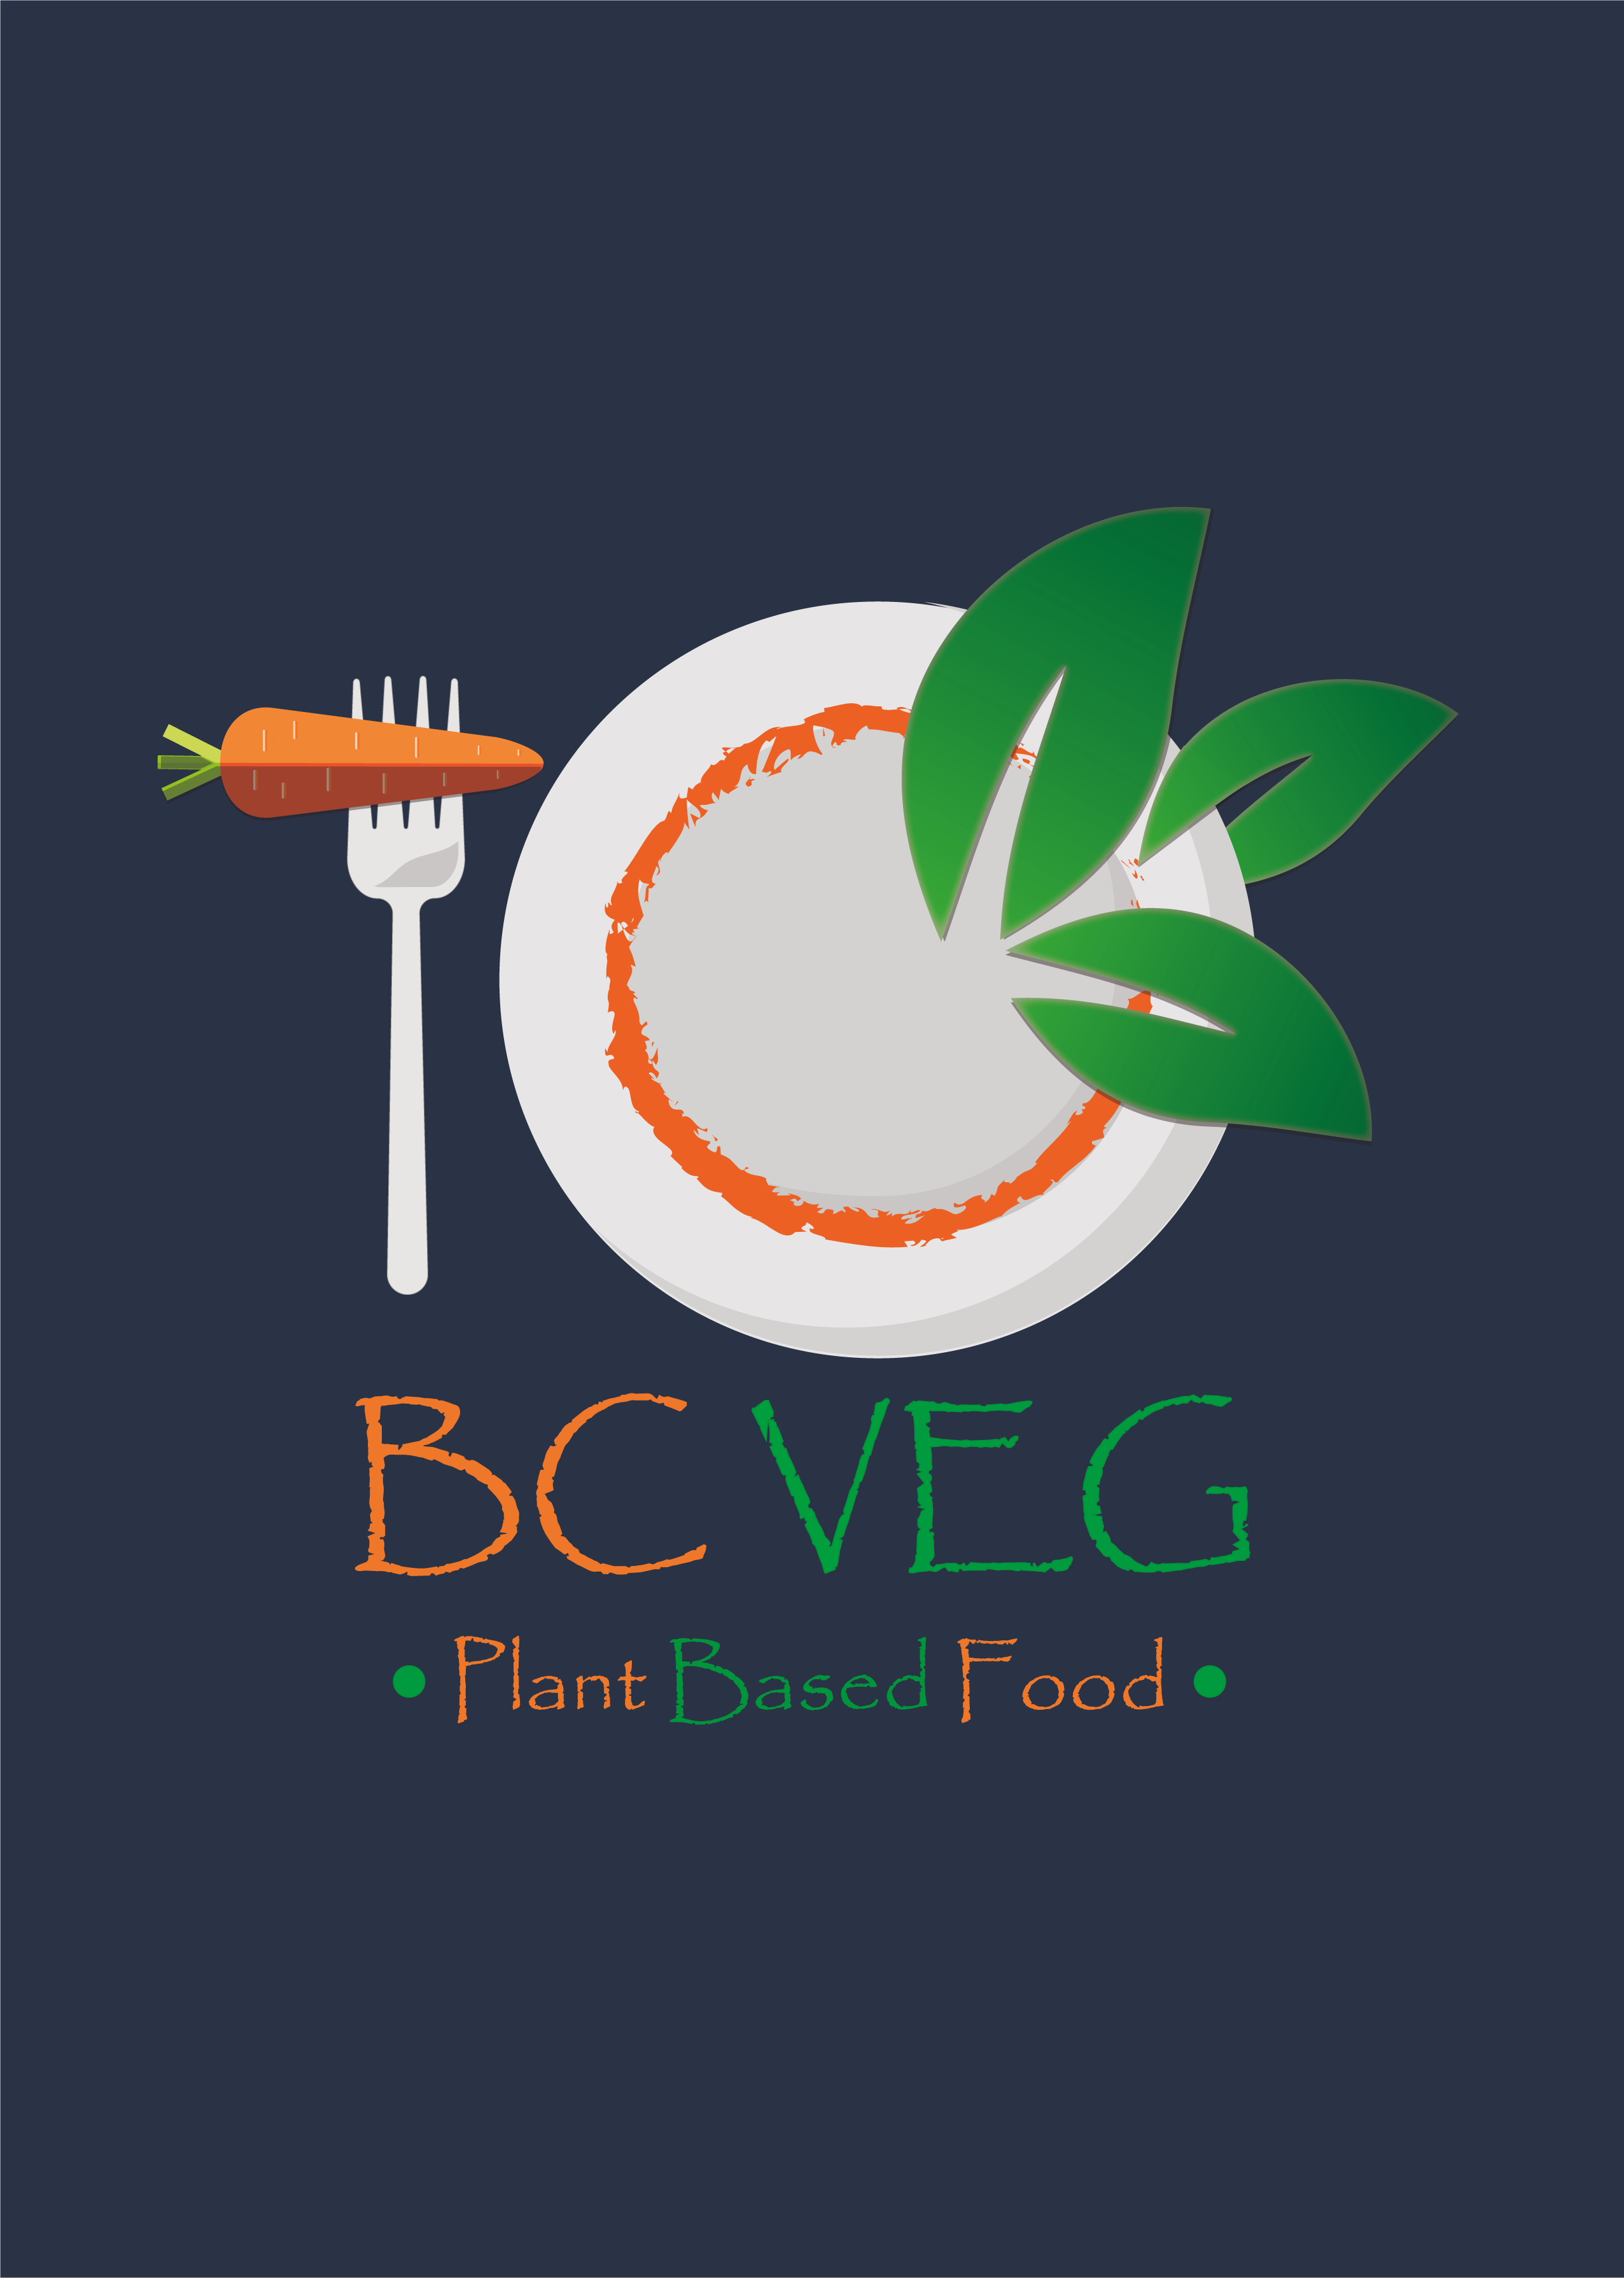 BCVEG Plant Based Food